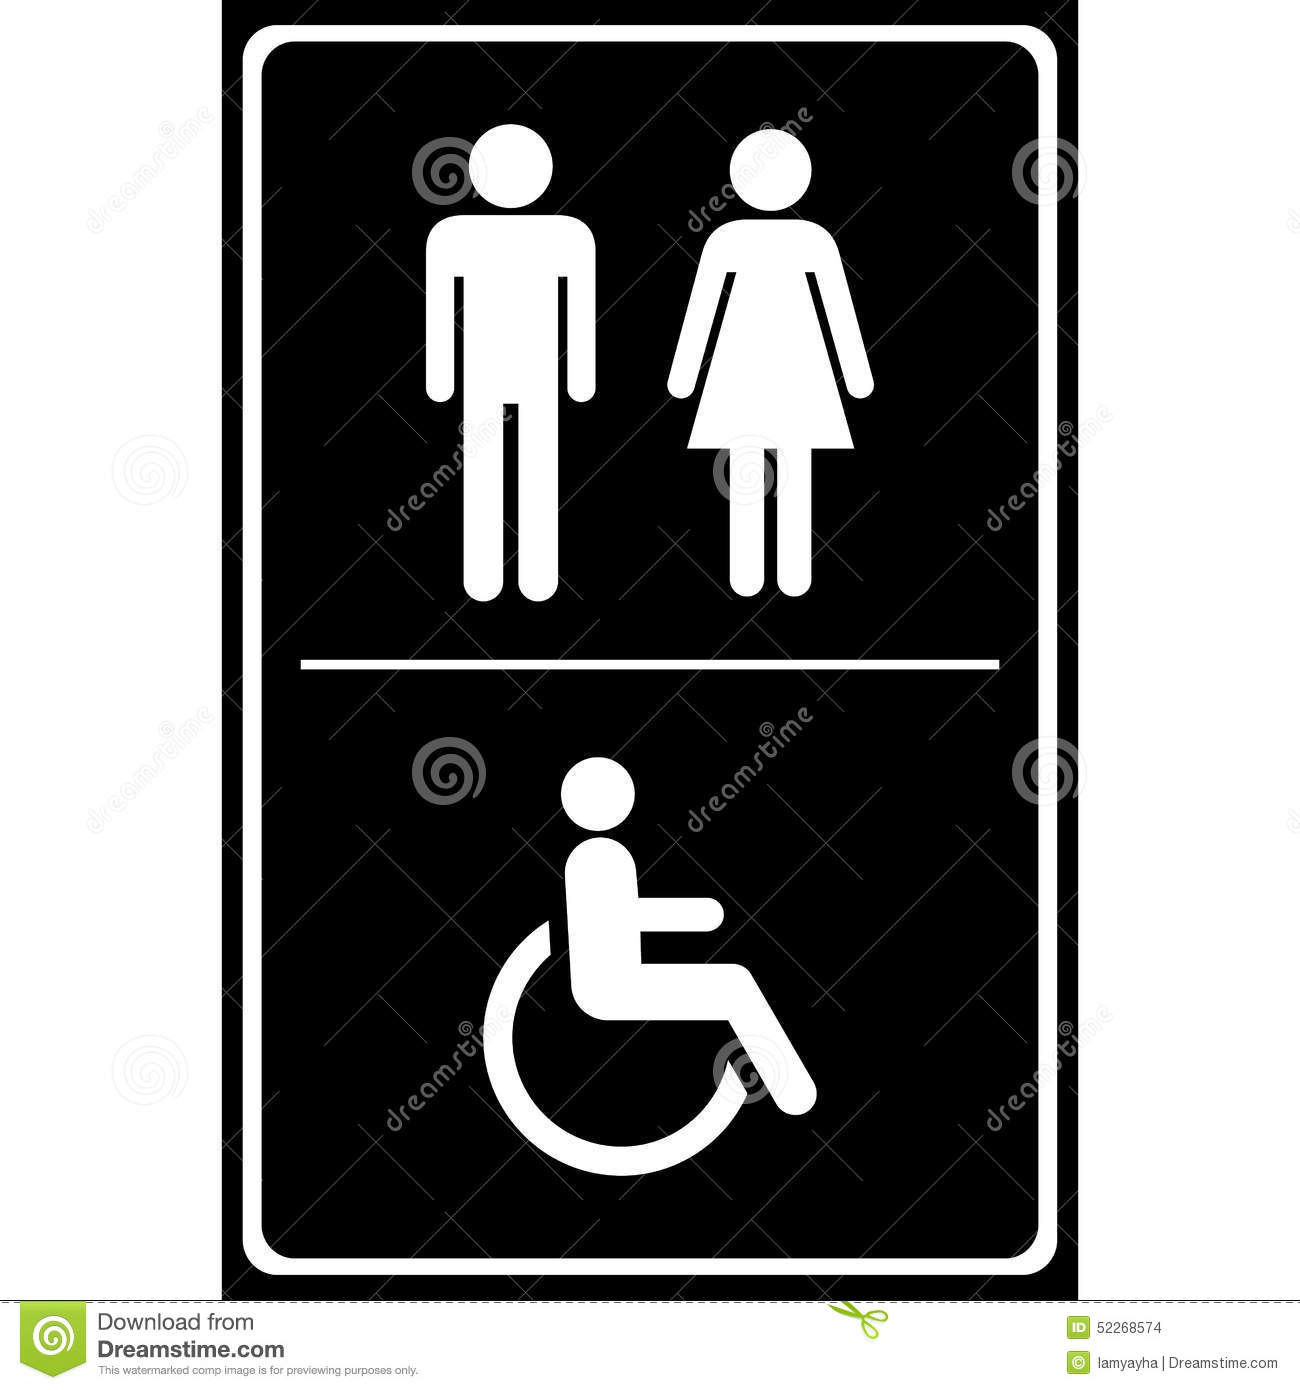 Bathroom Sign Handicap toilet sign with black background, man sign, women sign, handicap